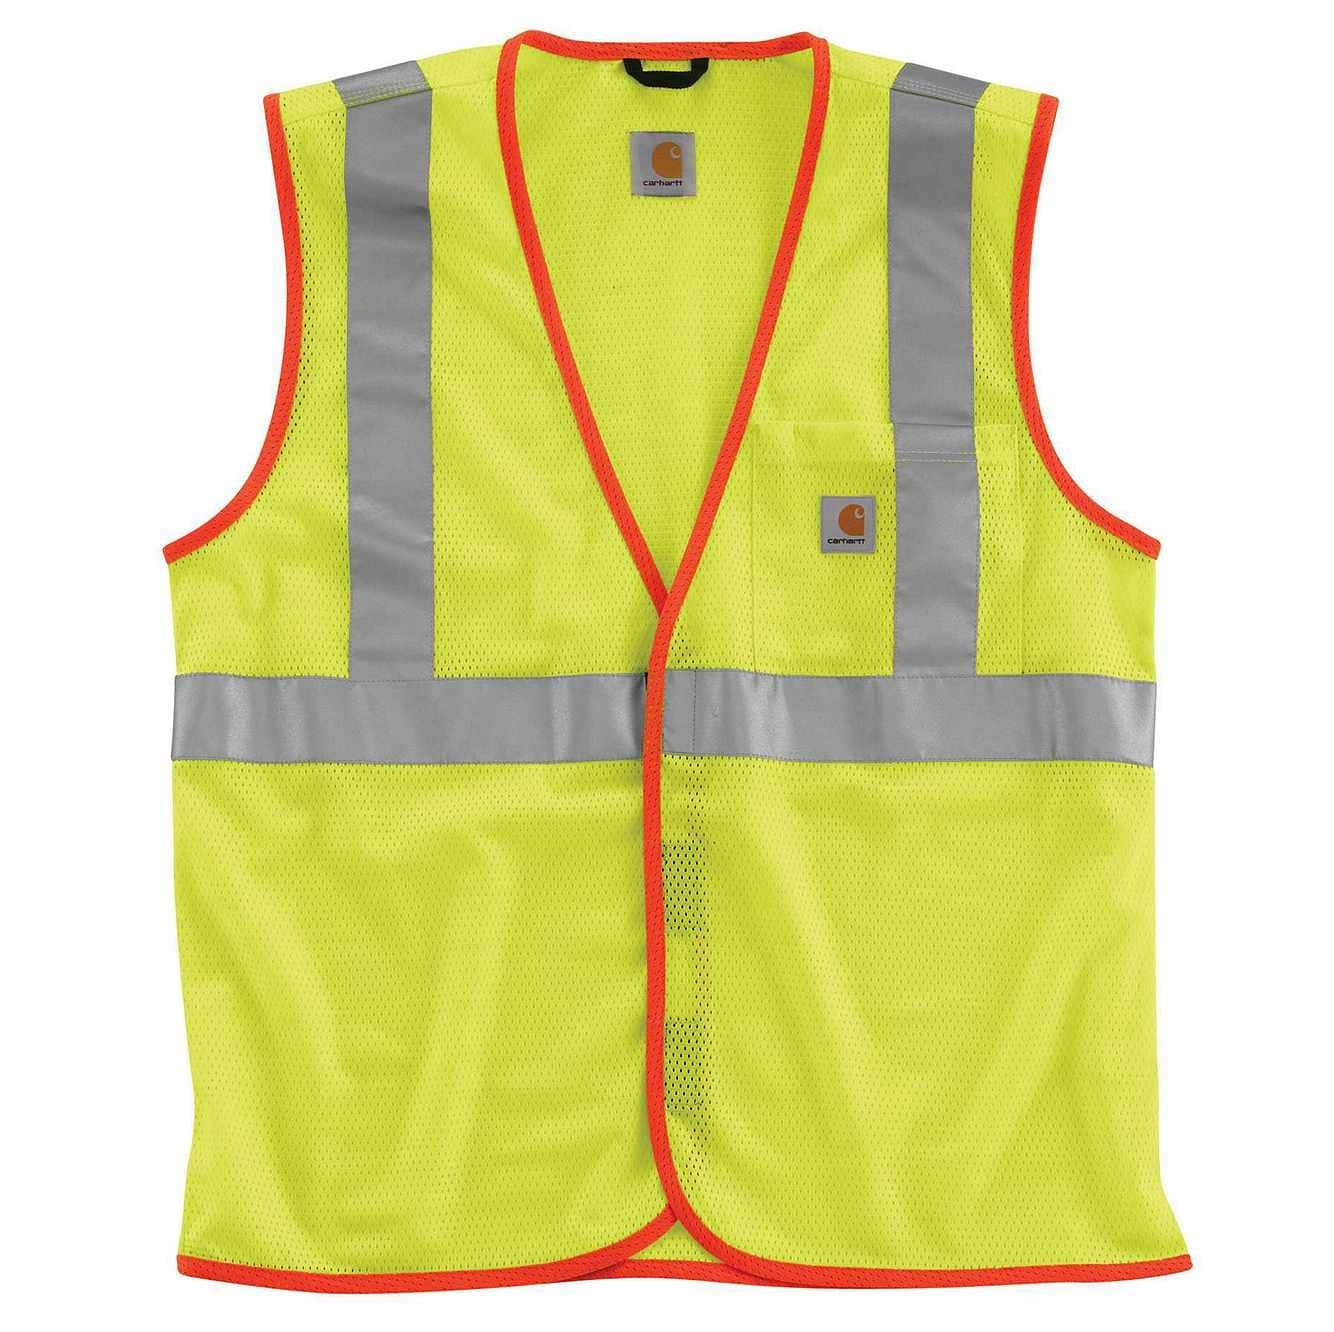 Picture of High-Visibility Class 2 Vest in Brite Lime